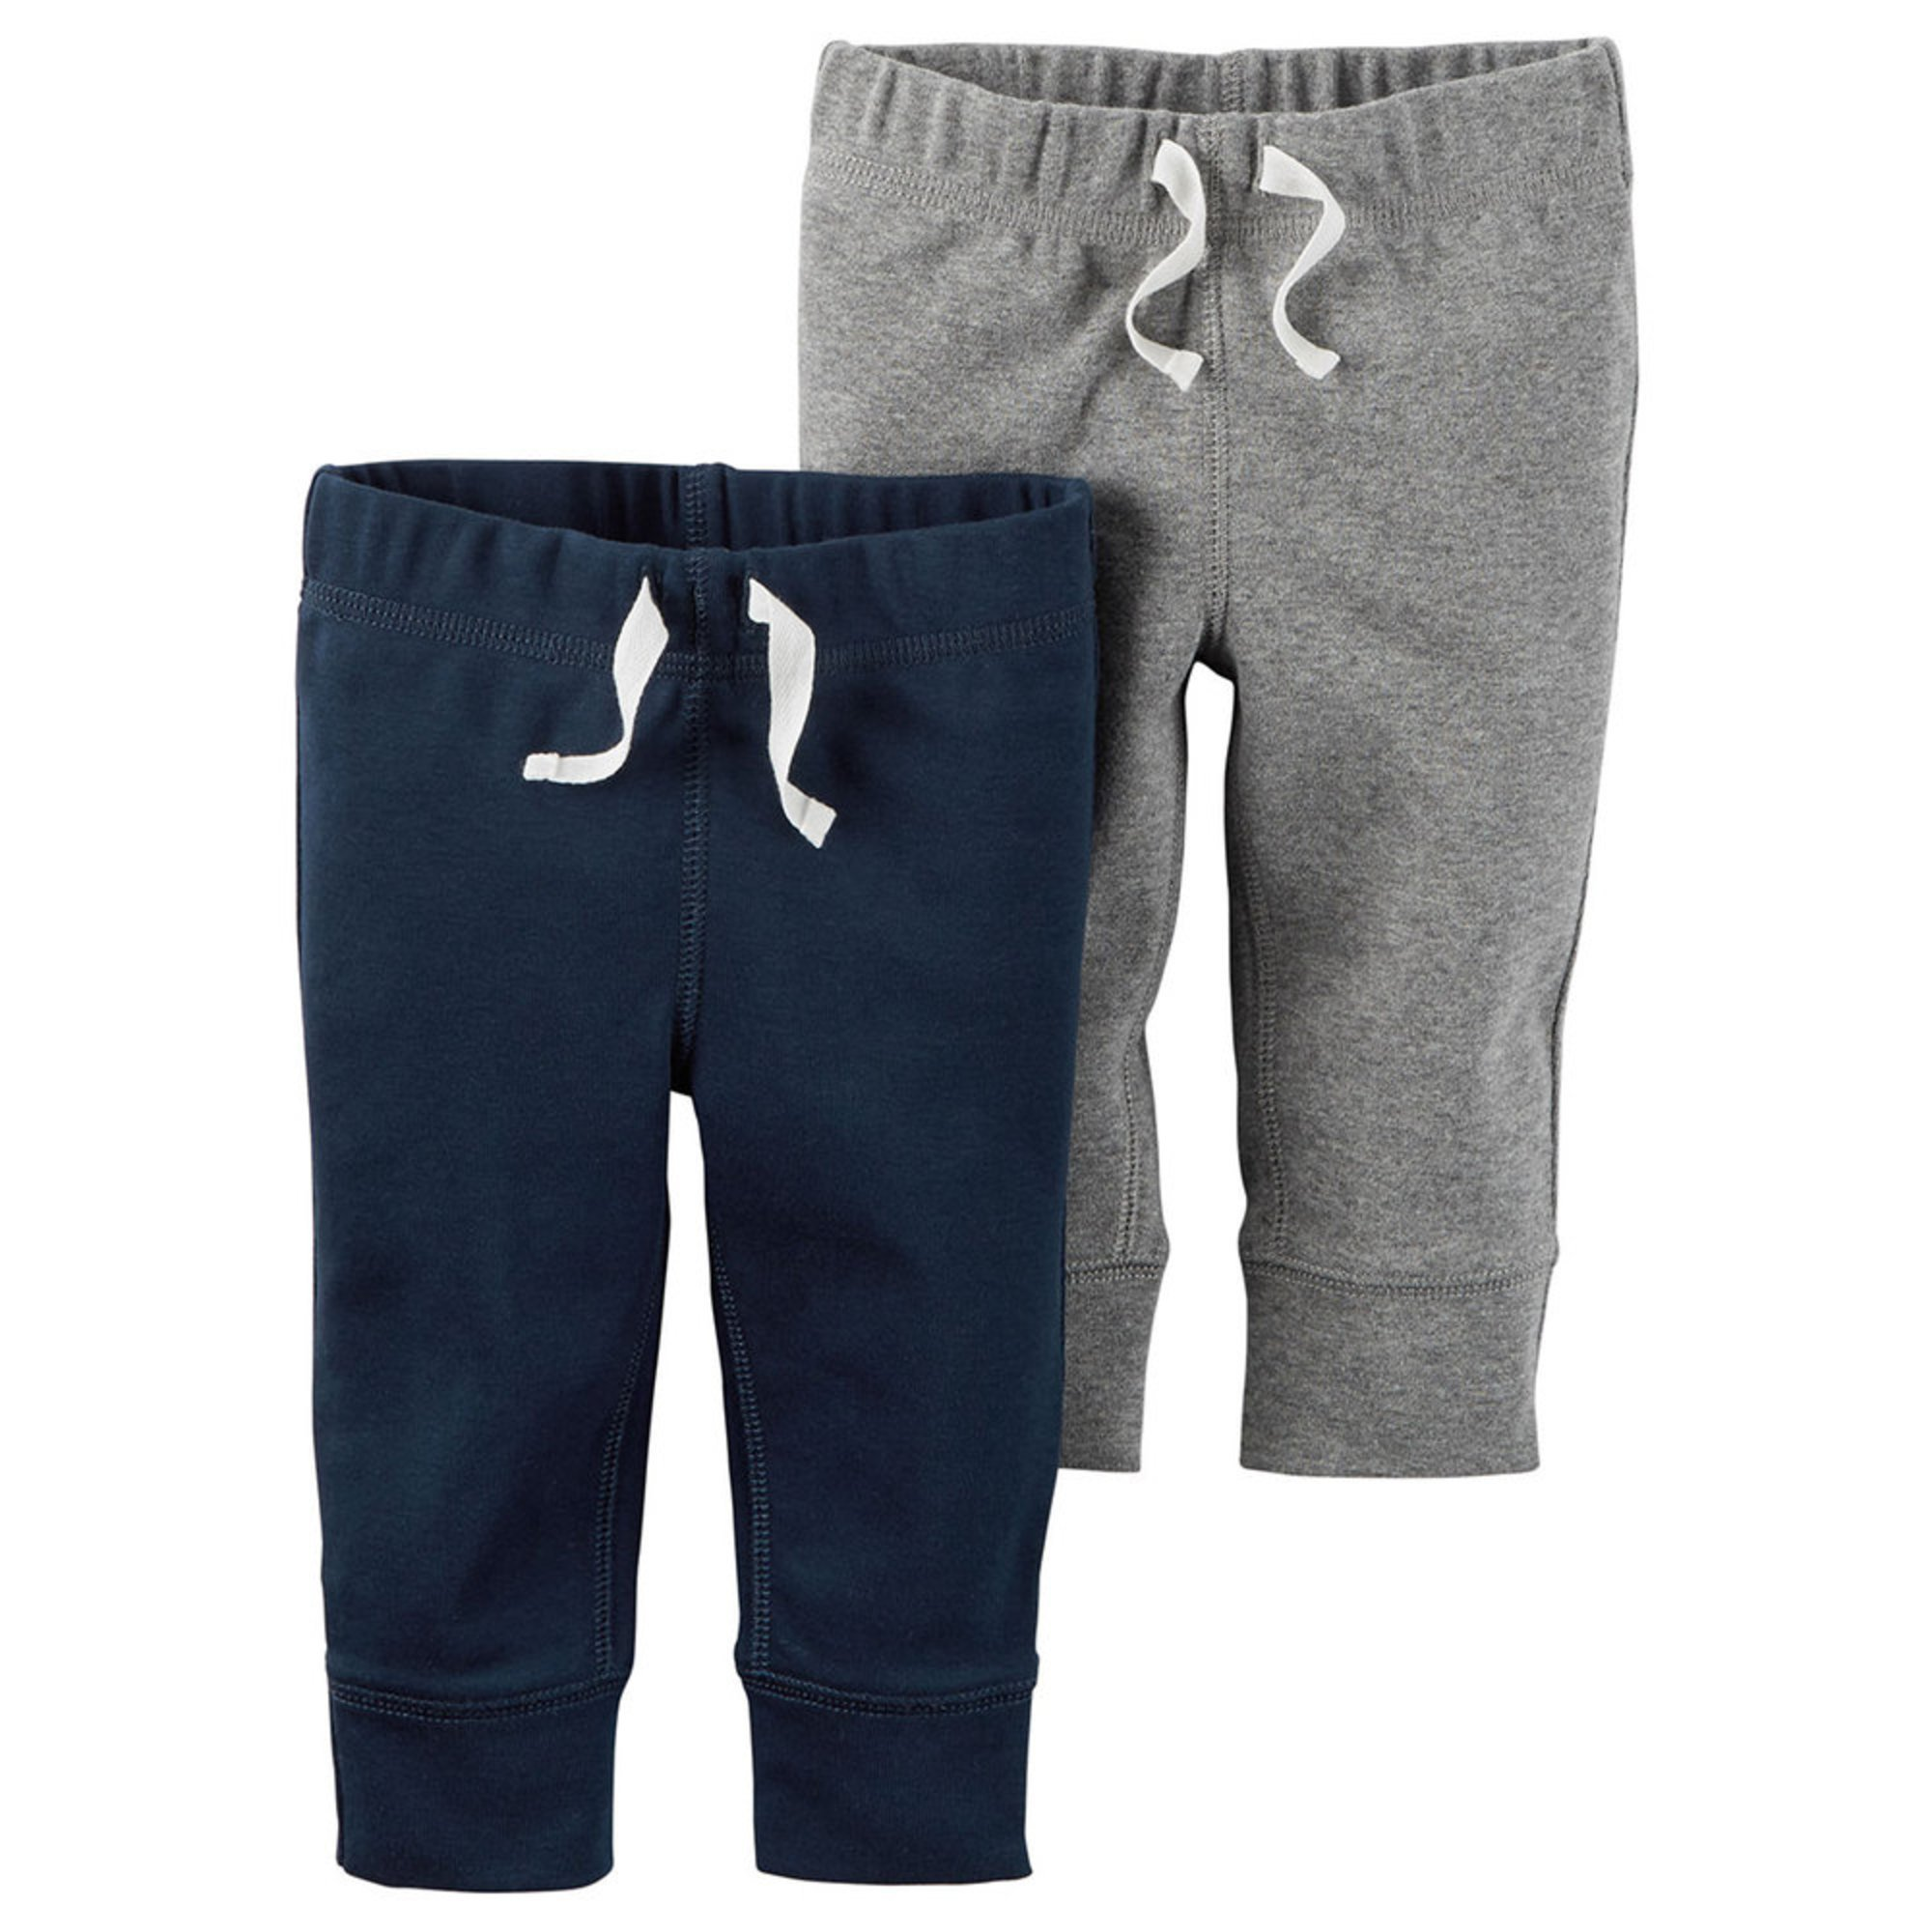 Boys love clothes from Old Navy because they look cool and feel comfortable. Create easy outfits for boys' everyday styles, special occasions, sports events & more.